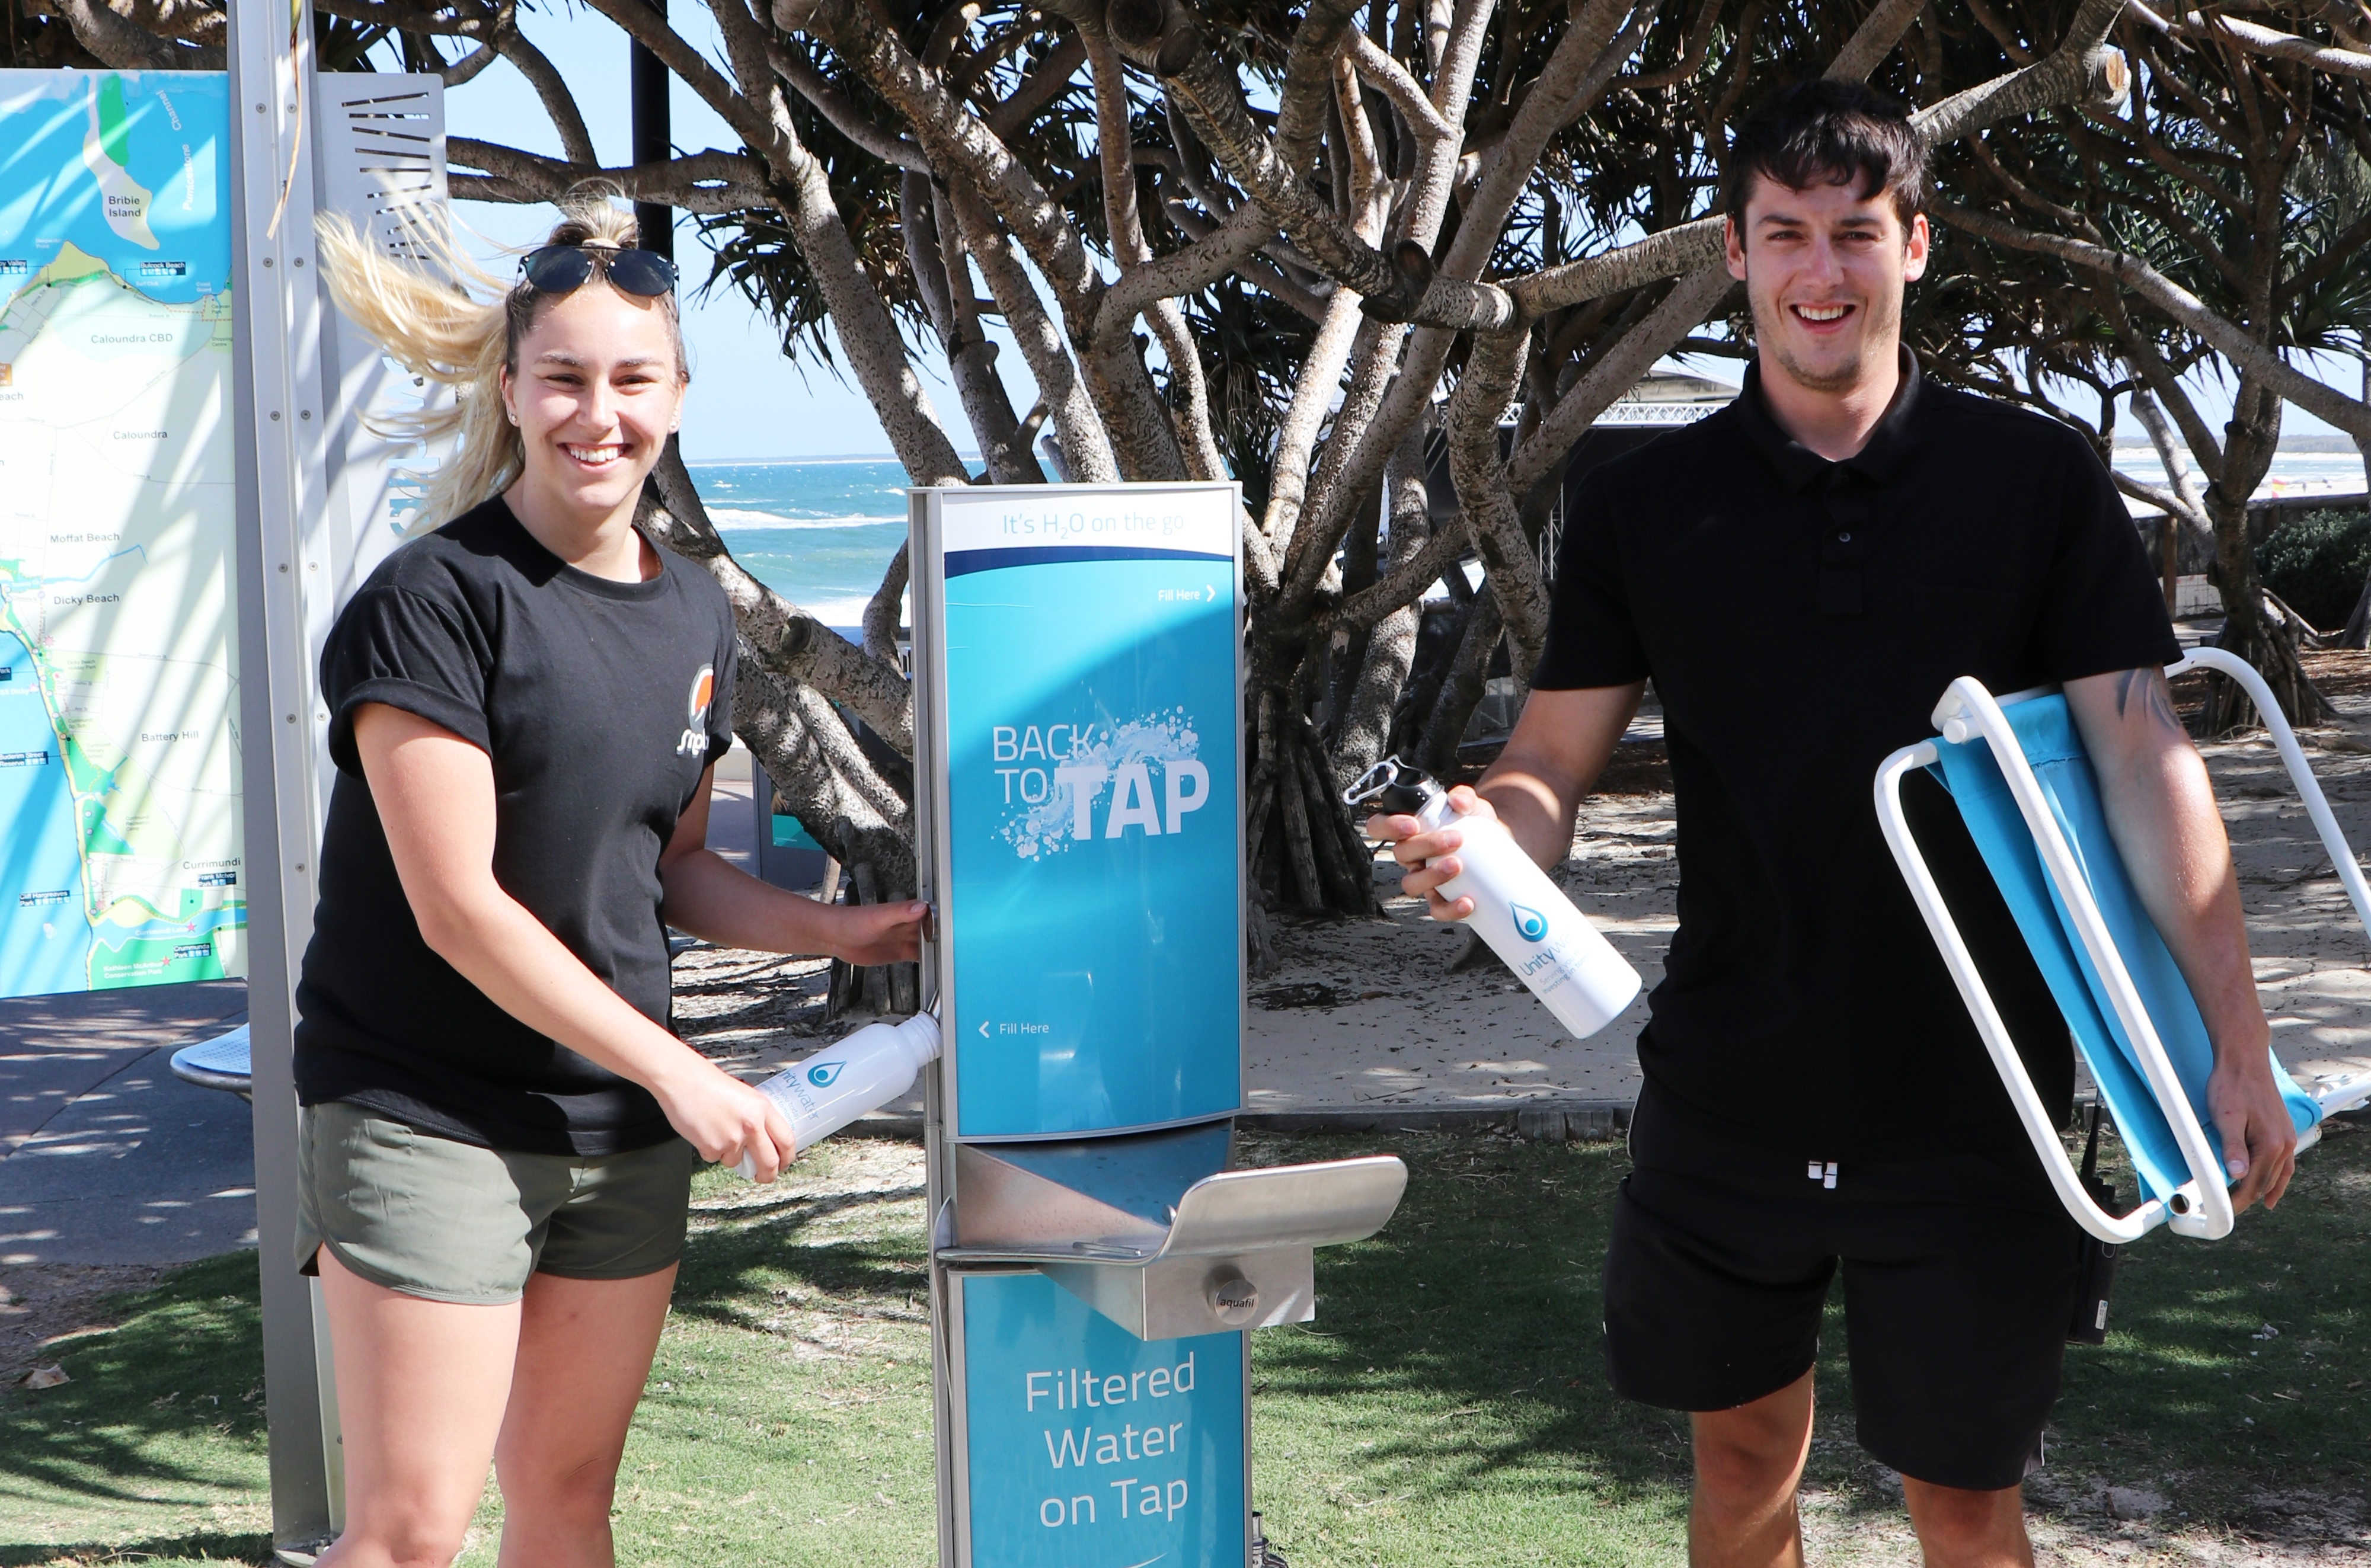 Sam Beattie and Sam Clothier use the Back to Tap refill station at Kings Beach ahead of Caloundra Music Festival.